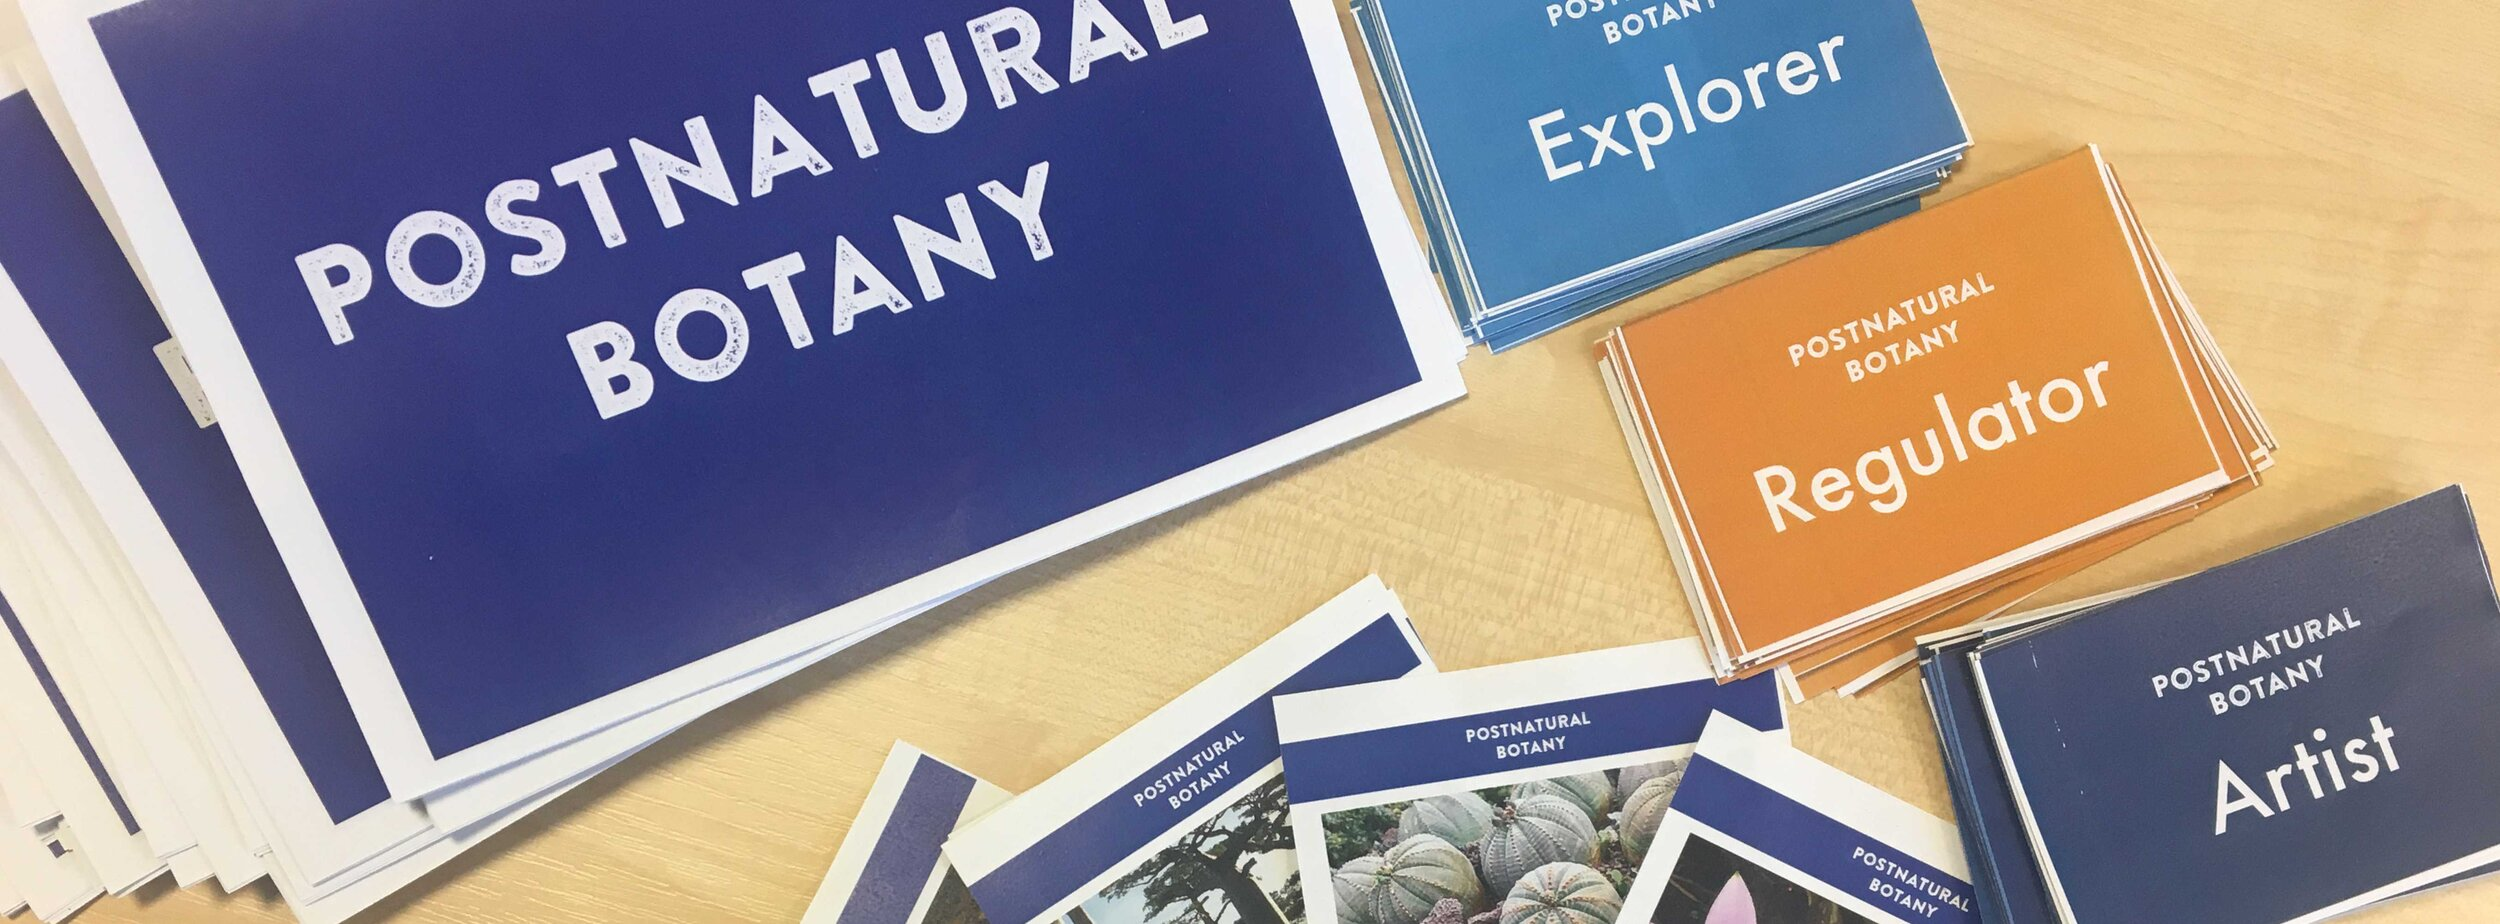 """""""POSTNATURAL BOTANY"""" RULES BOOKLET, PLANT DISCOVERY CARDS, AND ROLE-PLAYING CARS FOR """"EXPLORER"""", """"REGULATOR"""" AMD """"ARTIST"""". A COLLABORATIVE EFFORT BETWEEN KAREN INGRAM AND NICOLA PATRON FOR THE 4TH ANNUAL OPENPLANT FORUM. Photo: Karen Ingram"""